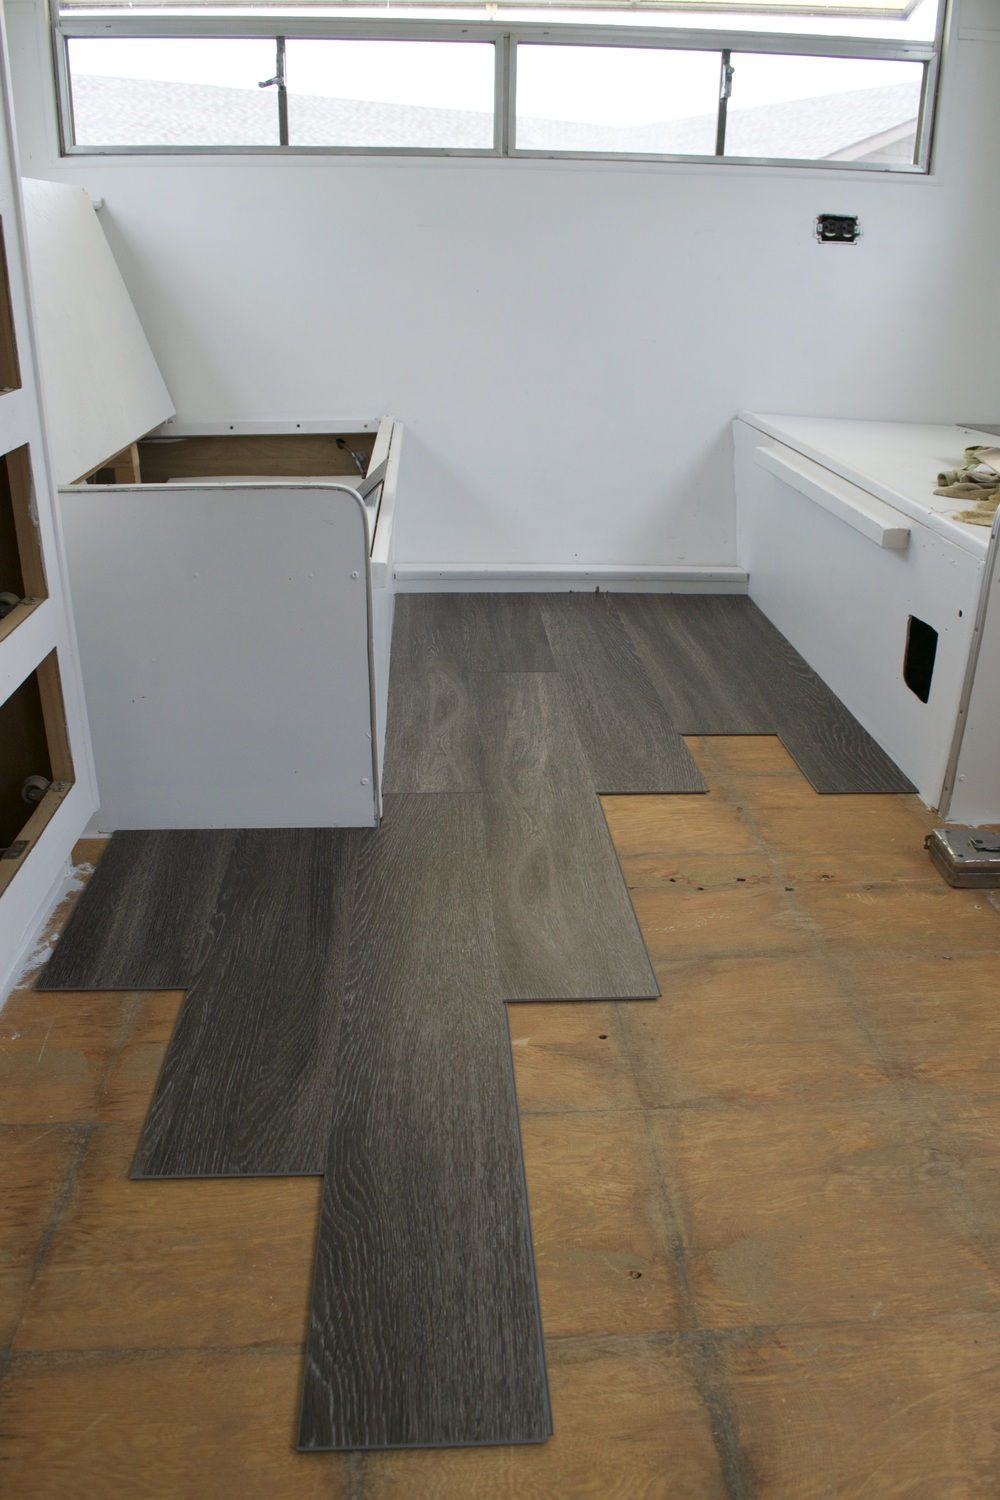 Bathroom Floor Tiles Weight : Reasons to install vinyl plank flooring in your trailer or